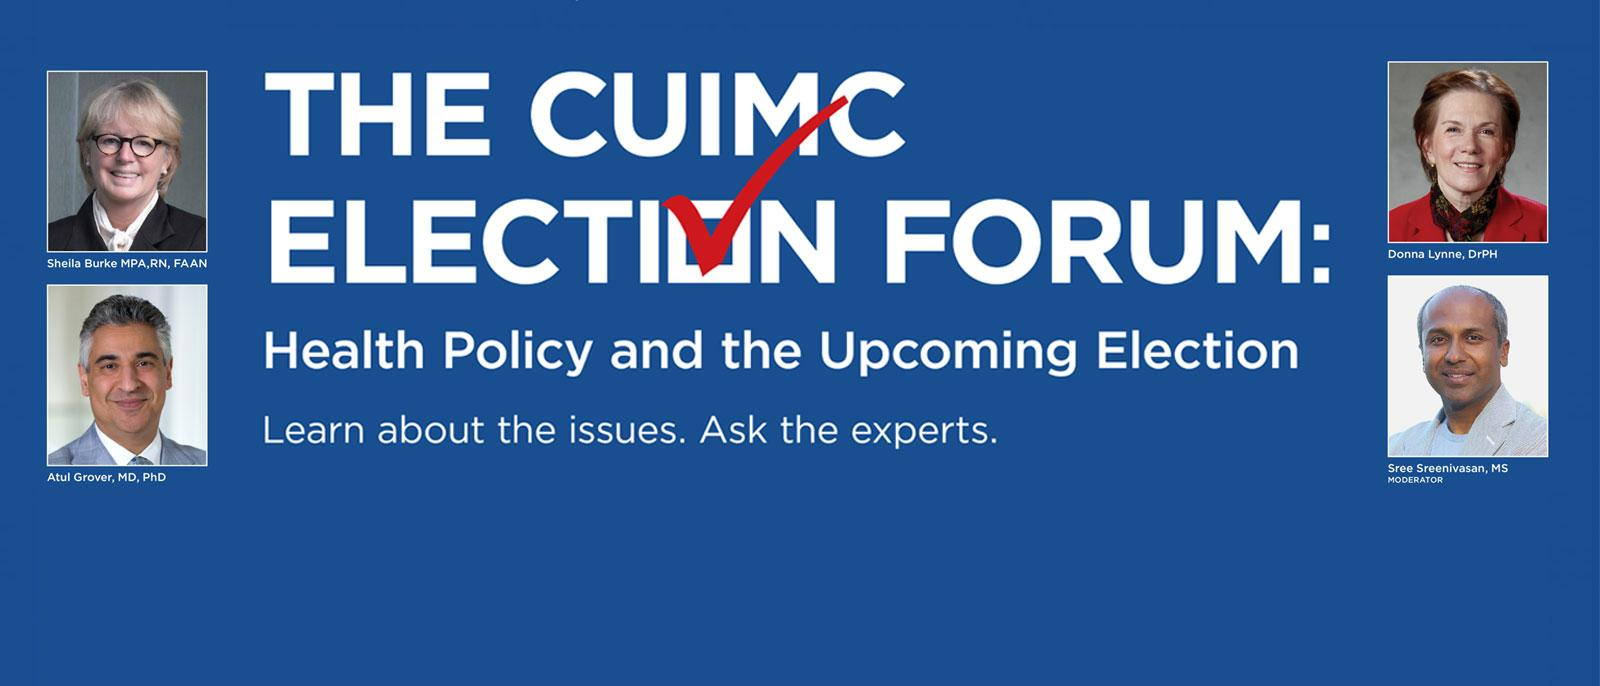 The CUIMC Election Forum: Health Policy & the Upcoming Election. Learn about the issues. Ask the experts. Wednesday, October 14, 2020 5:00 PM - 7:00 PM